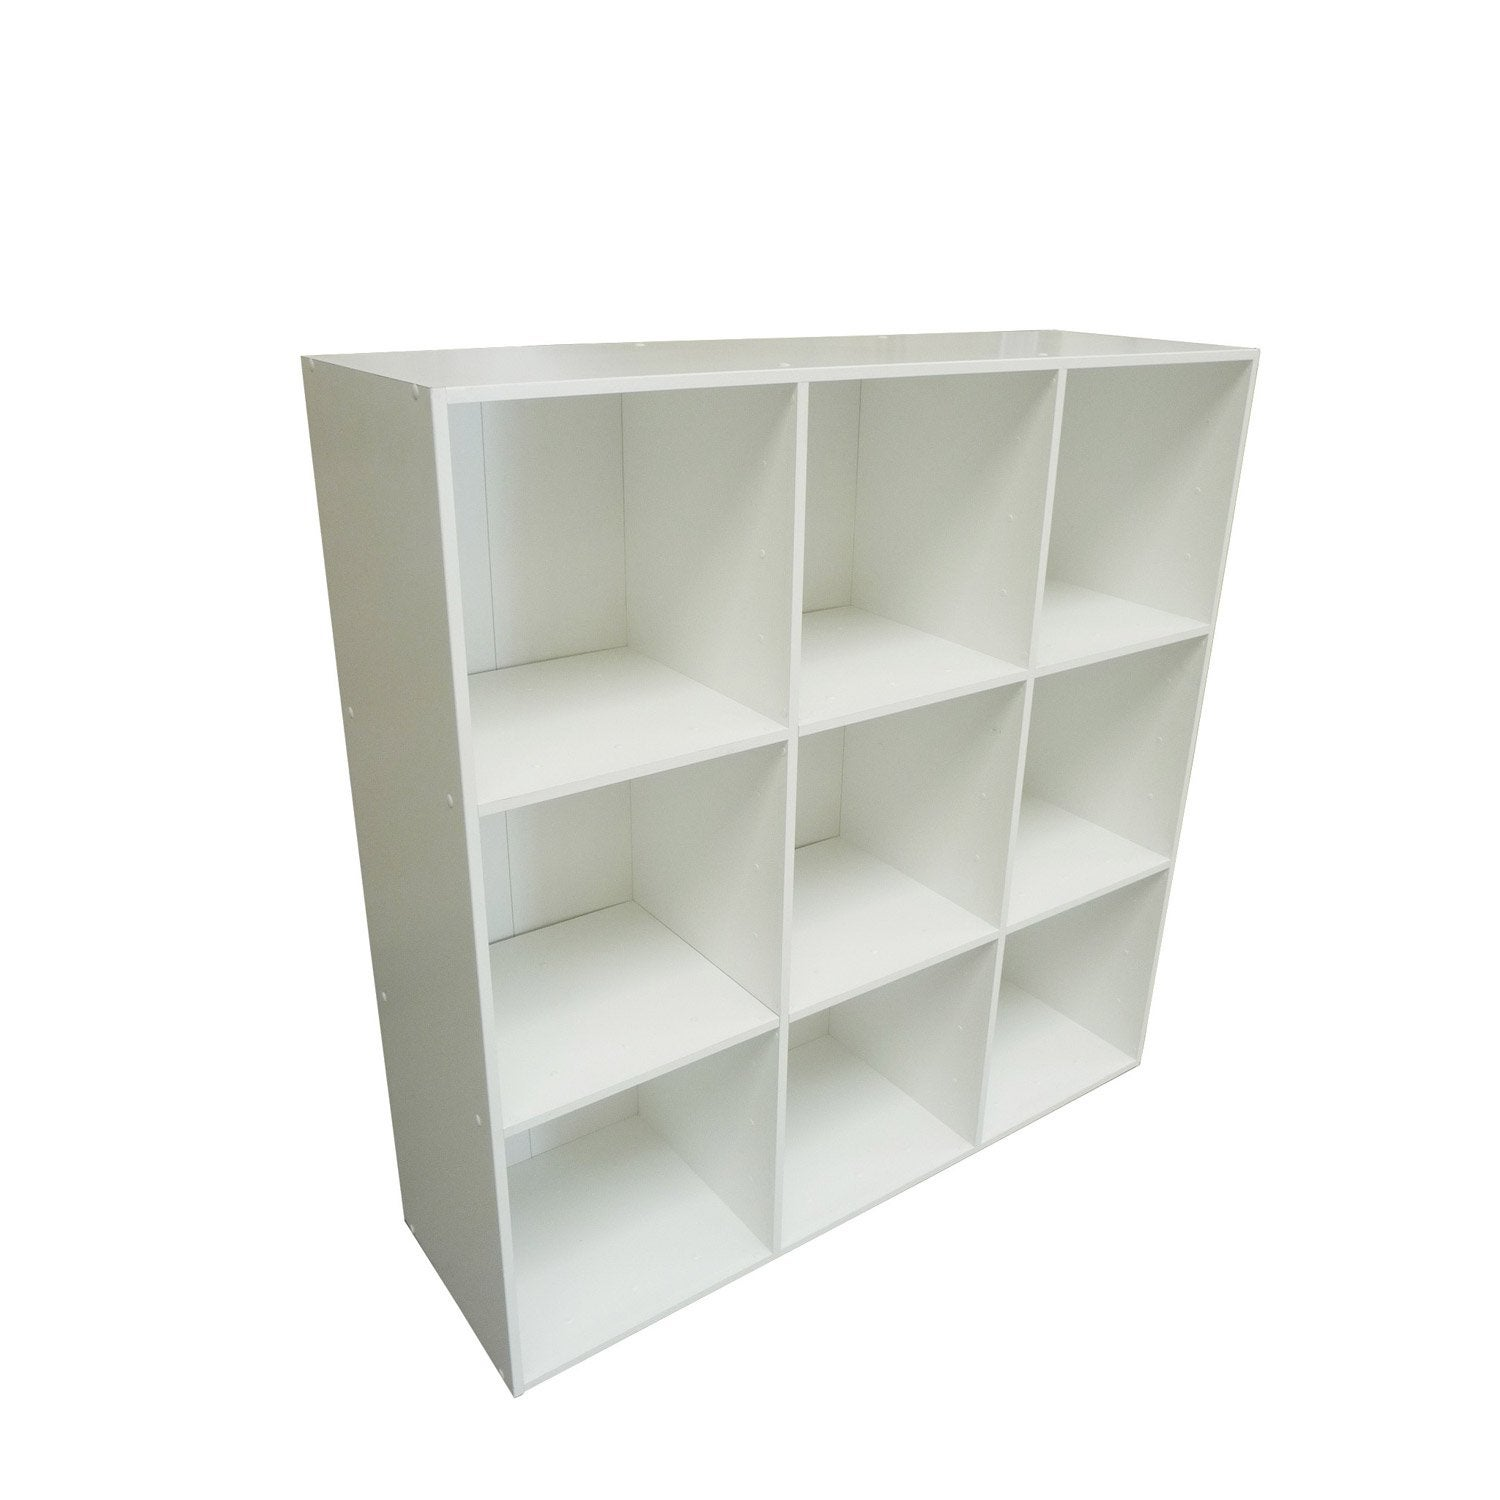 Etag re 9 cases multikaz blanche l103 2 x h103 2 cm leroy merlin - Etagere leroy merlin ...